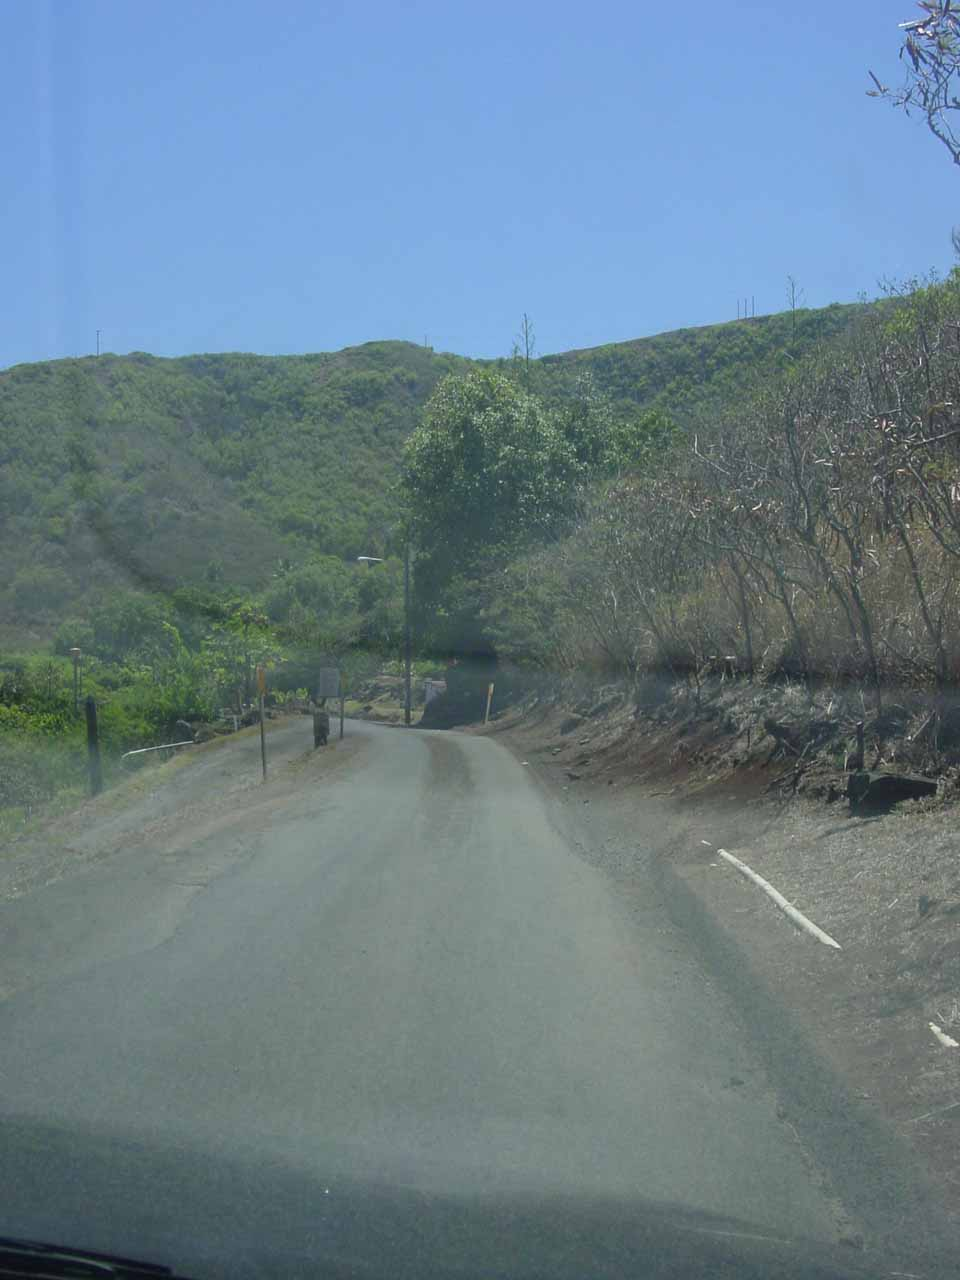 Driving the unpaved road to Kaheliki and Kahakuloa